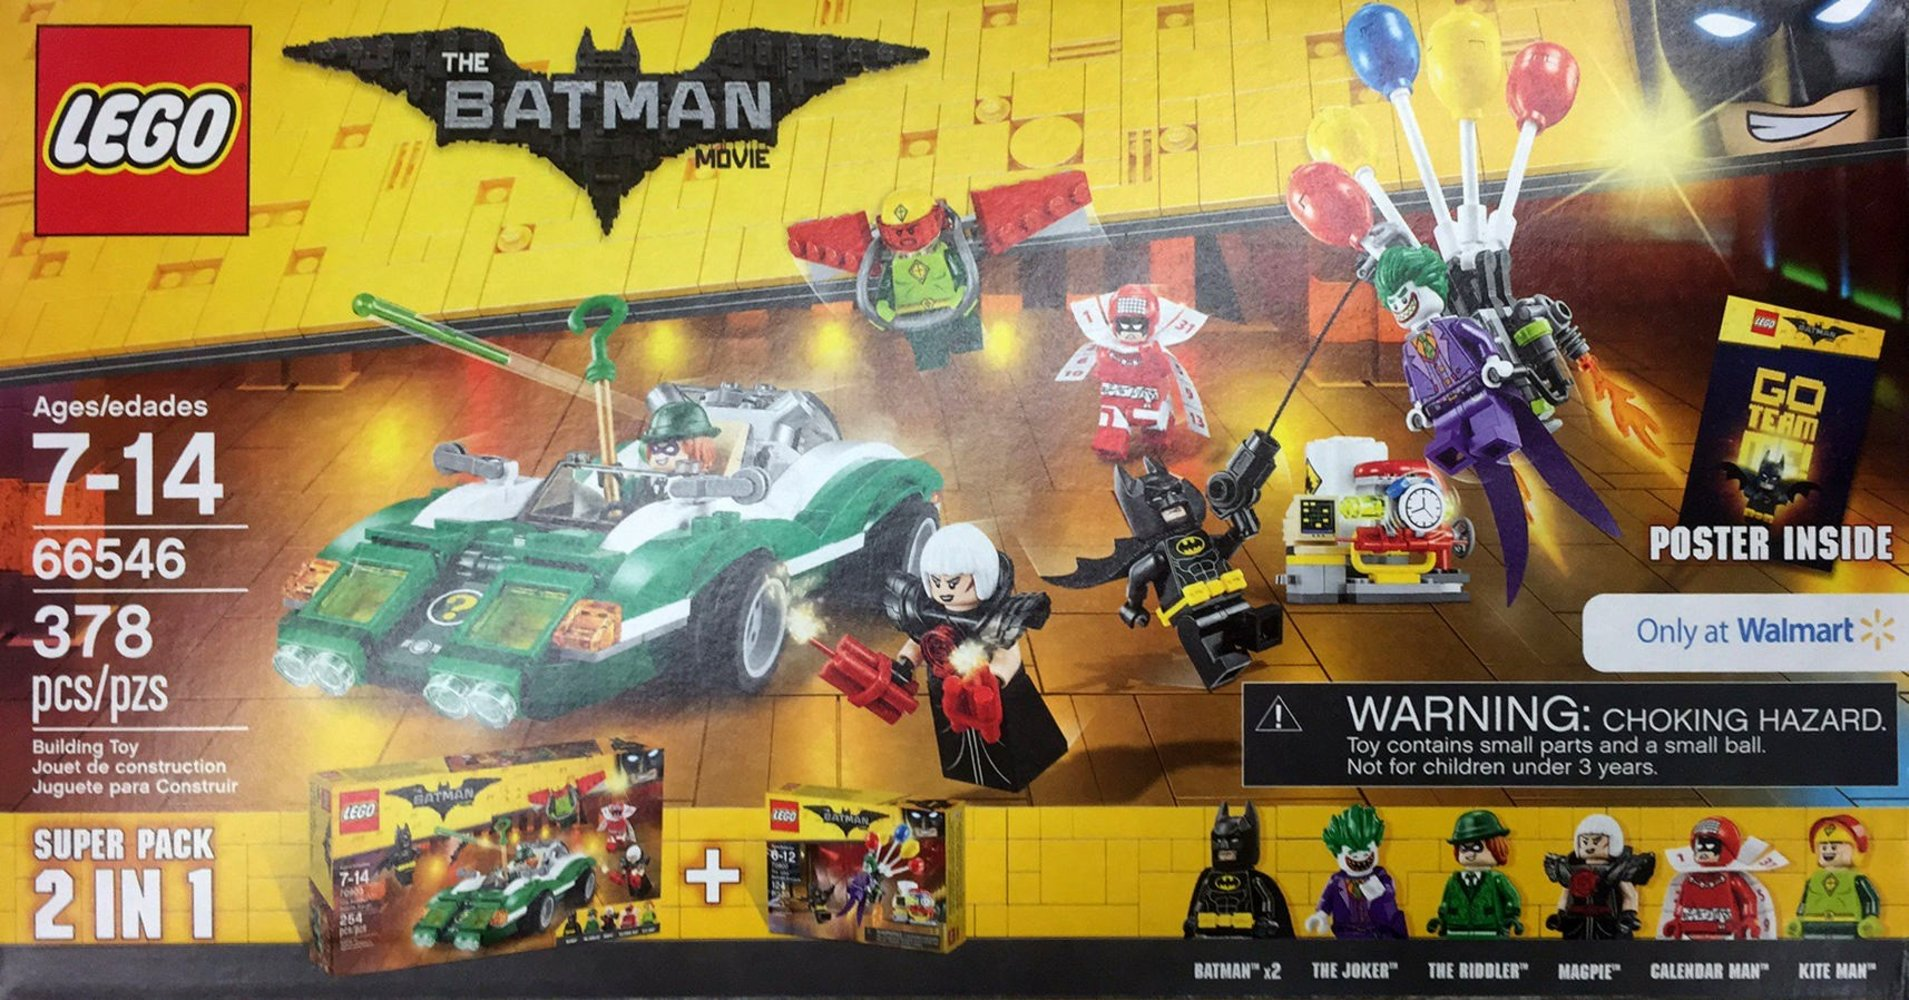 The LEGO Batman Movie Super Pack 2 in 1